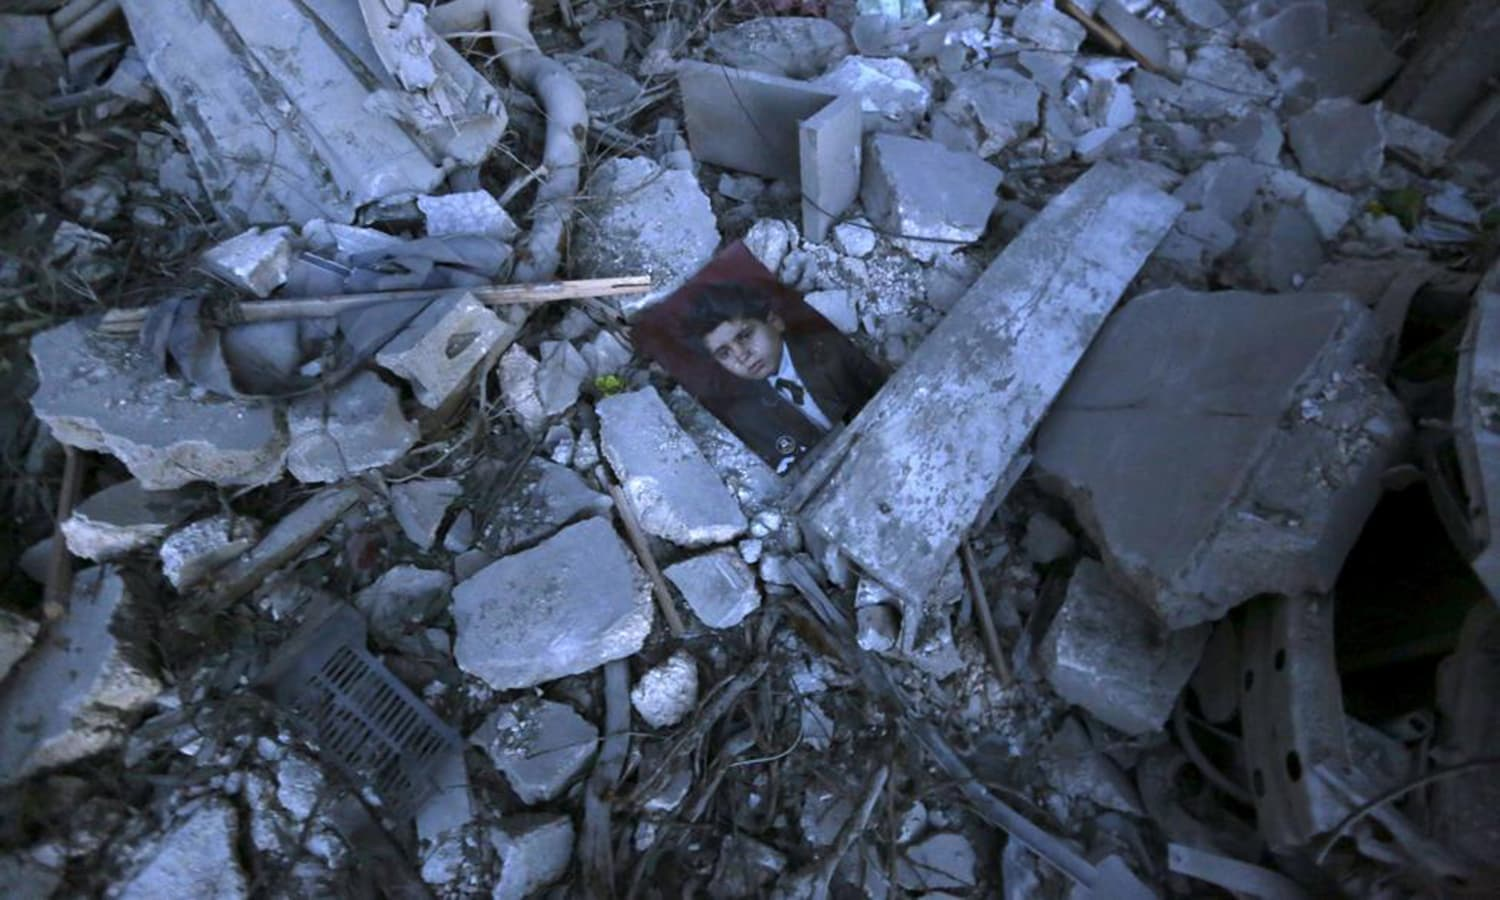 A picture lies amidst debris of collapsed buildings after what activists said was a barrel bomb dropped by forces loyal to Syria's President Bashar al-Assad in the Al-Qatrgi neighbourhood of Aleppo.— Reuters